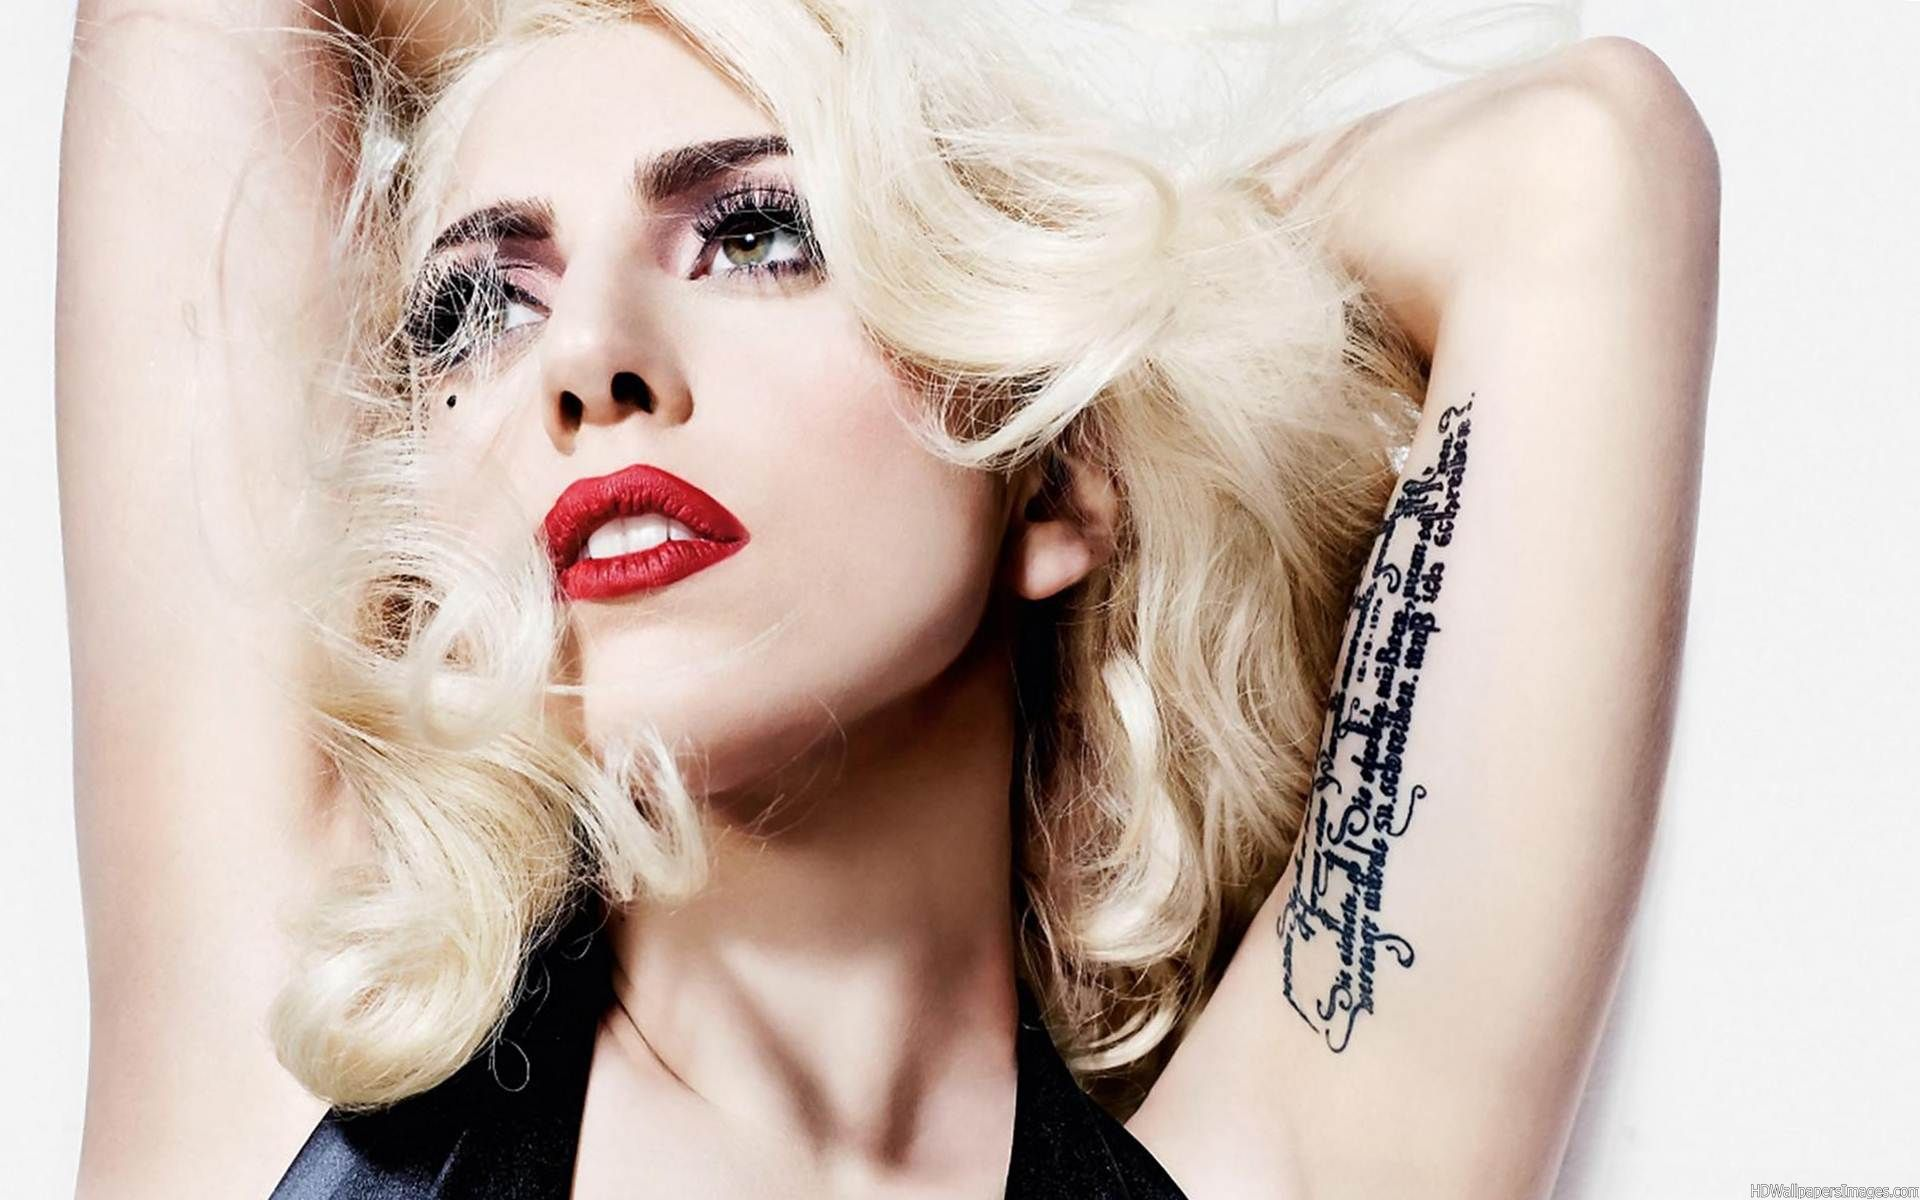 Lady Gaga Tattoo on the Arm